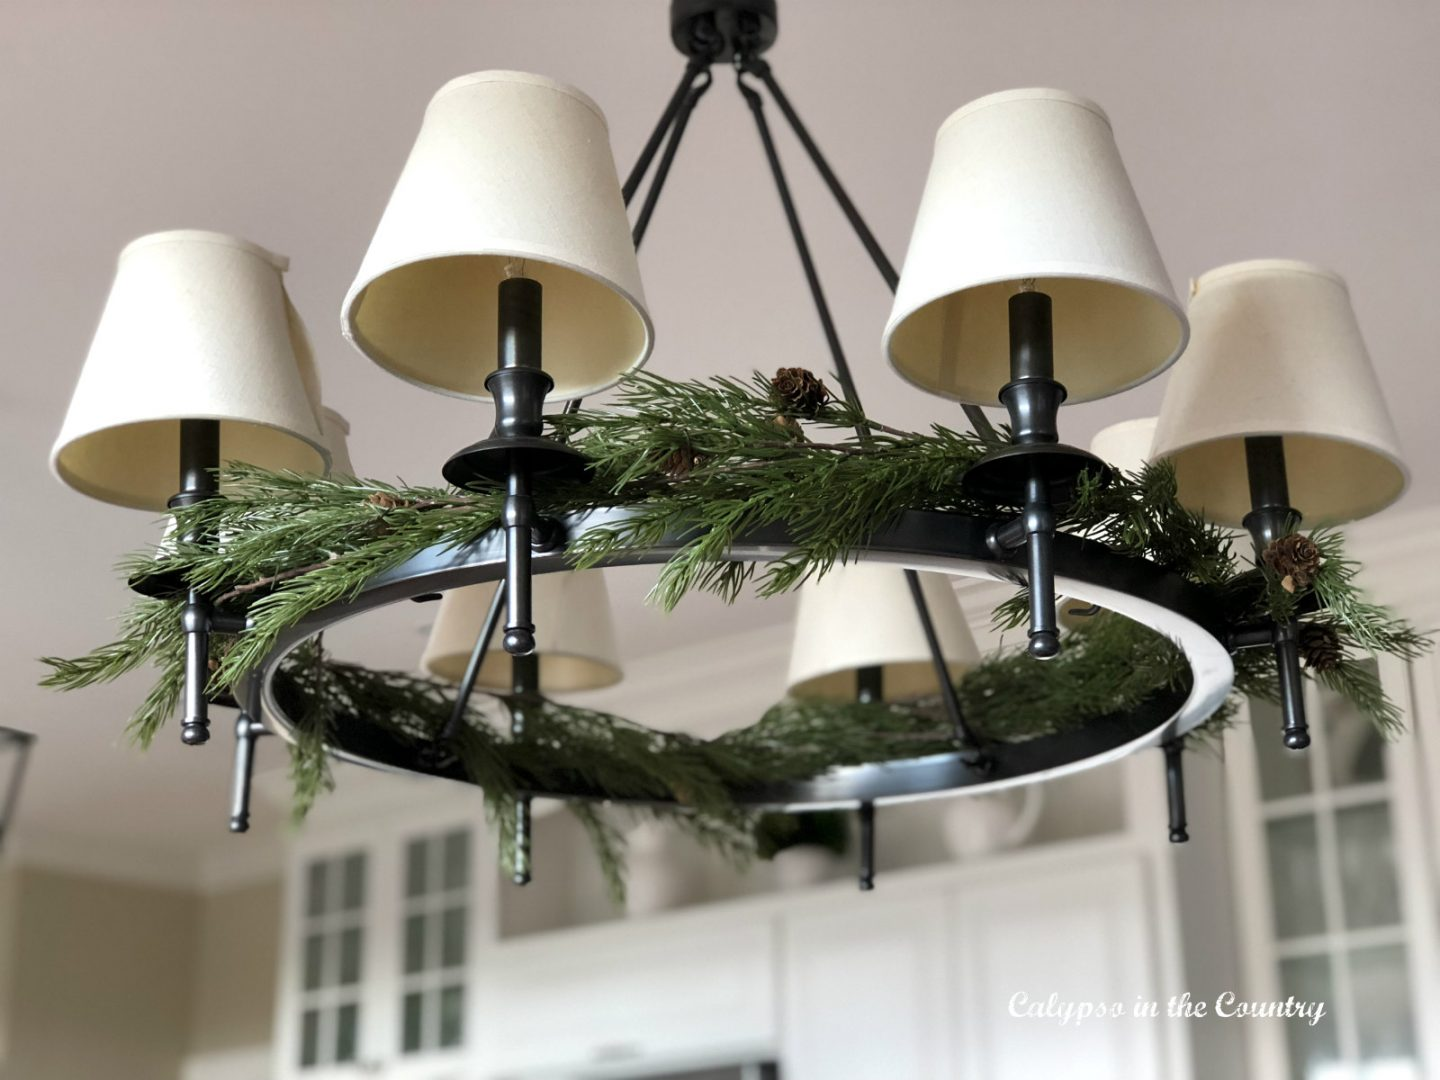 underside of chandelier with artificial greenery